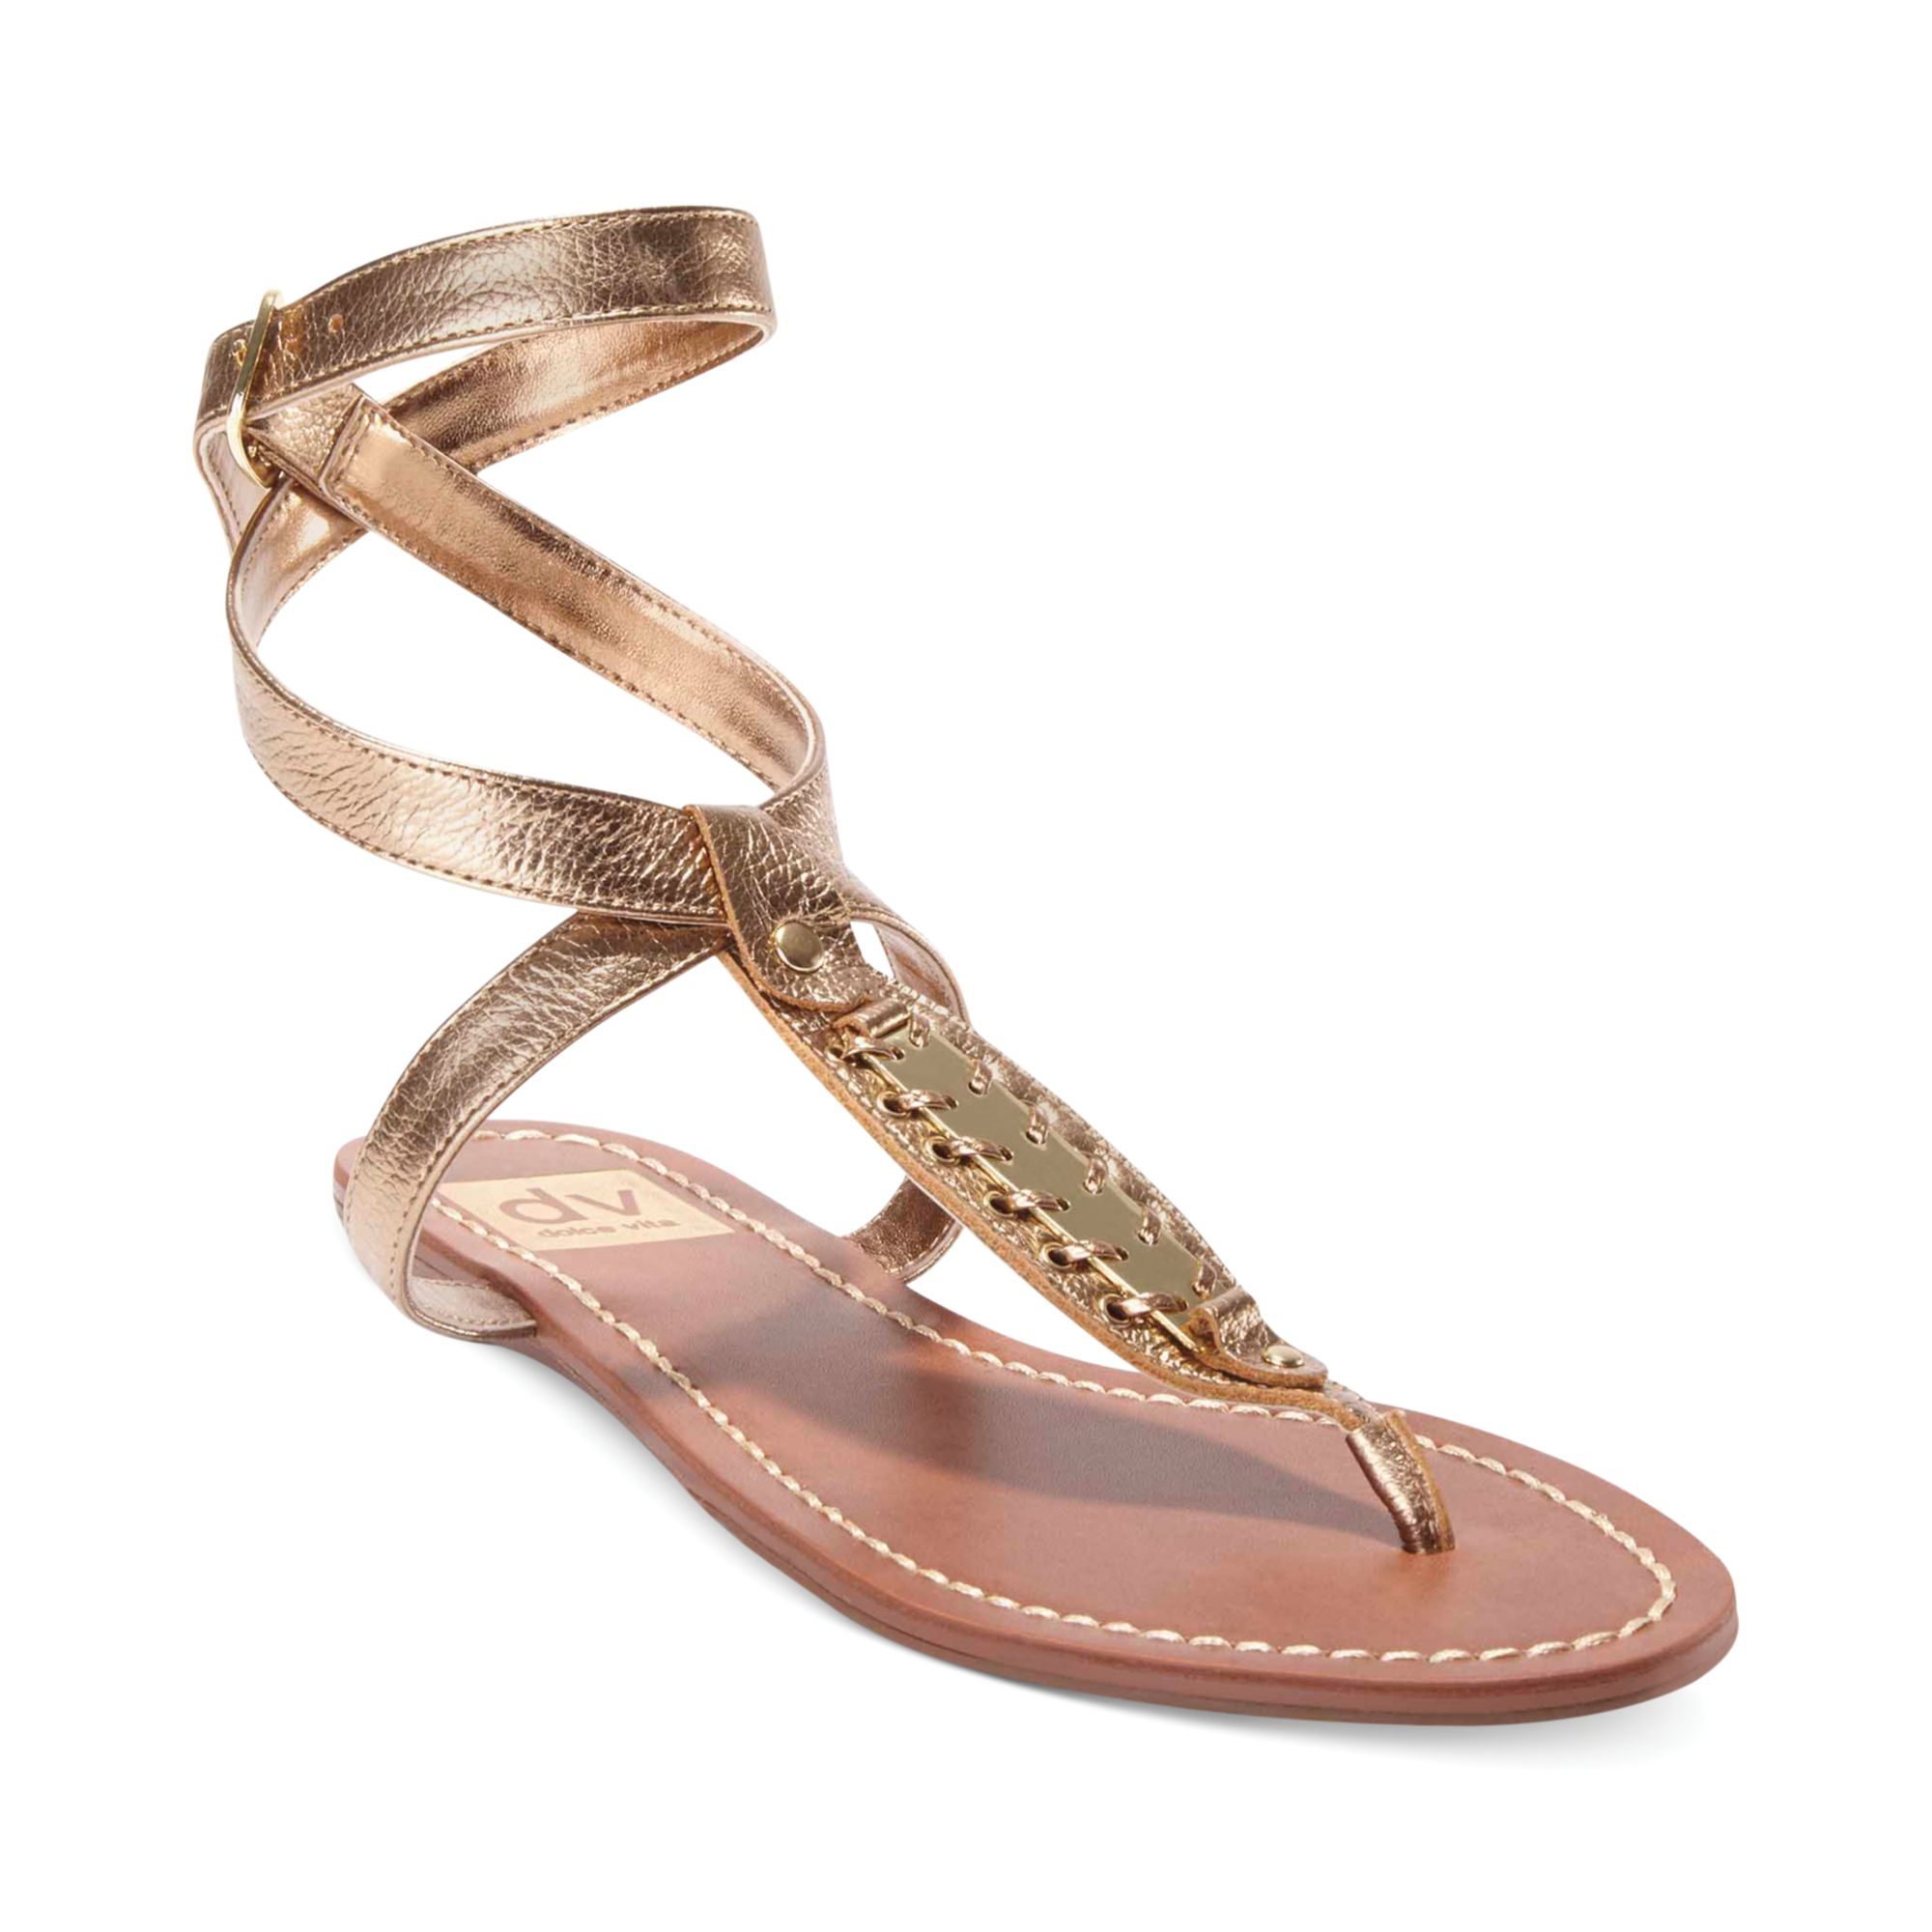 Lyst Dolce Vita Dv By Adryna Flat Thong Sandals In Metallic